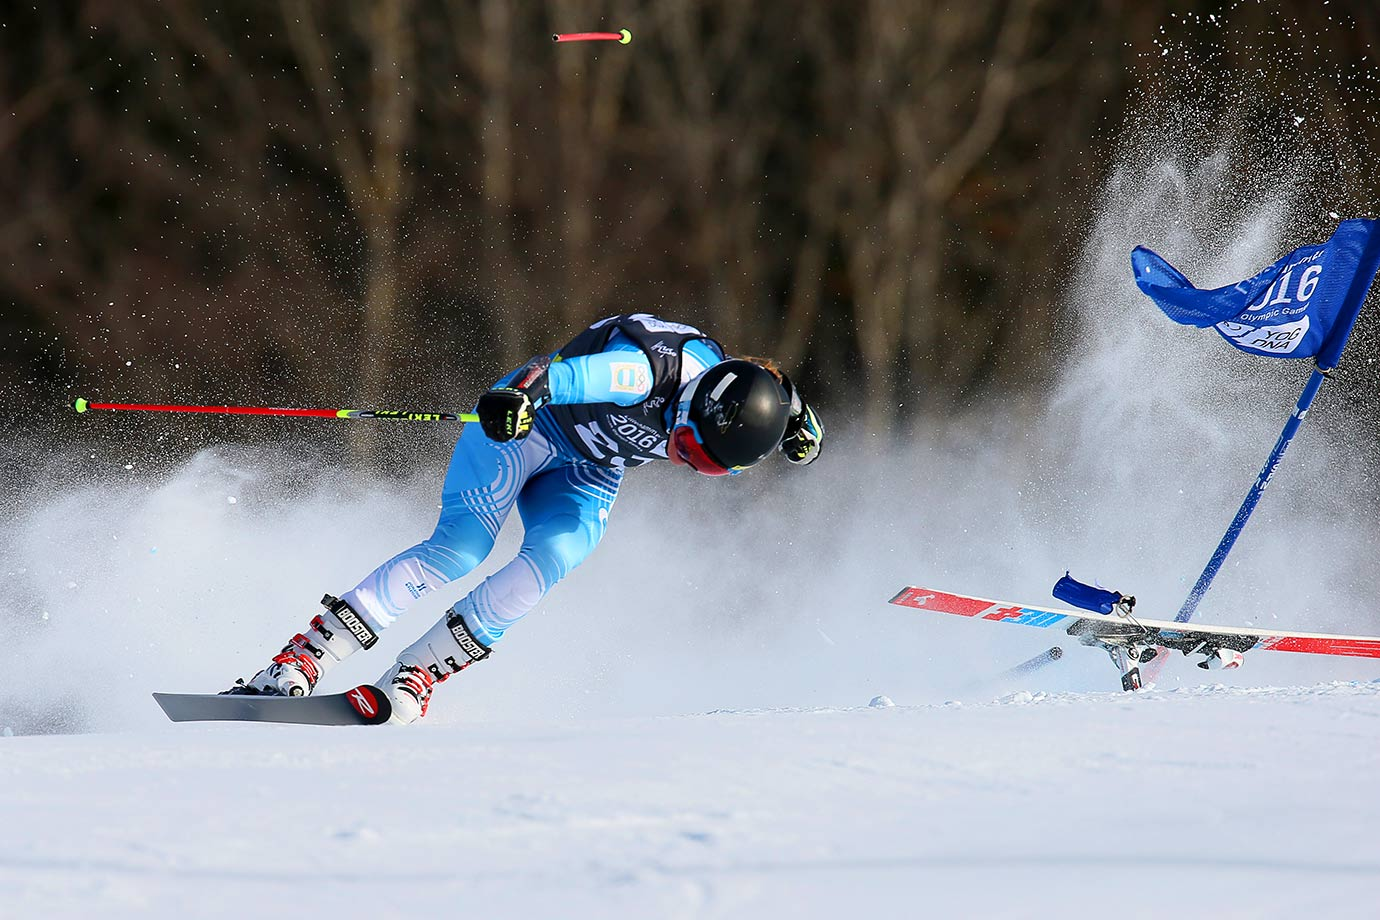 Francesca Baruzzi Farriol of Argentina loses her ski and crashes during the Alpine Skiing Ladies Giant Slalom at the Hafjell Olympic Slope on day five of the Winter Youth Olympic Games in Lillehammer, Norway.